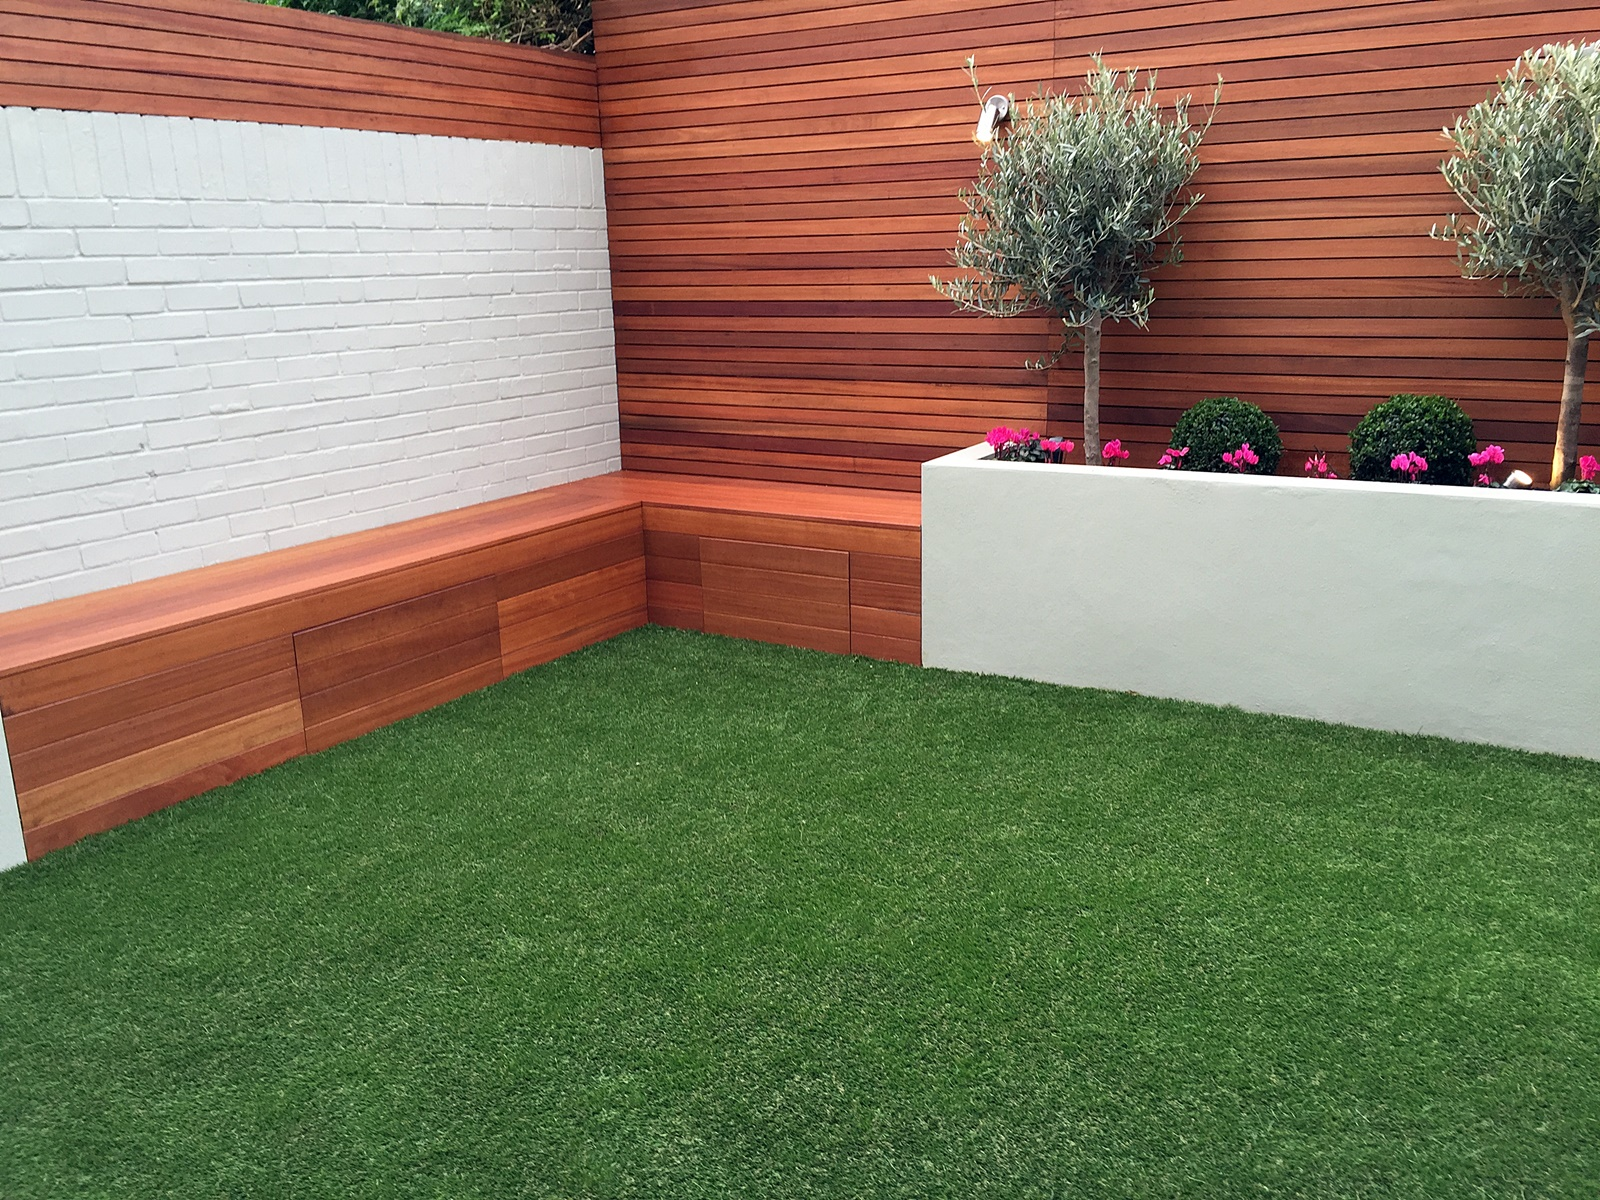 Simple modern court yard garden designer battersea fulham for Tiny garden design ideas